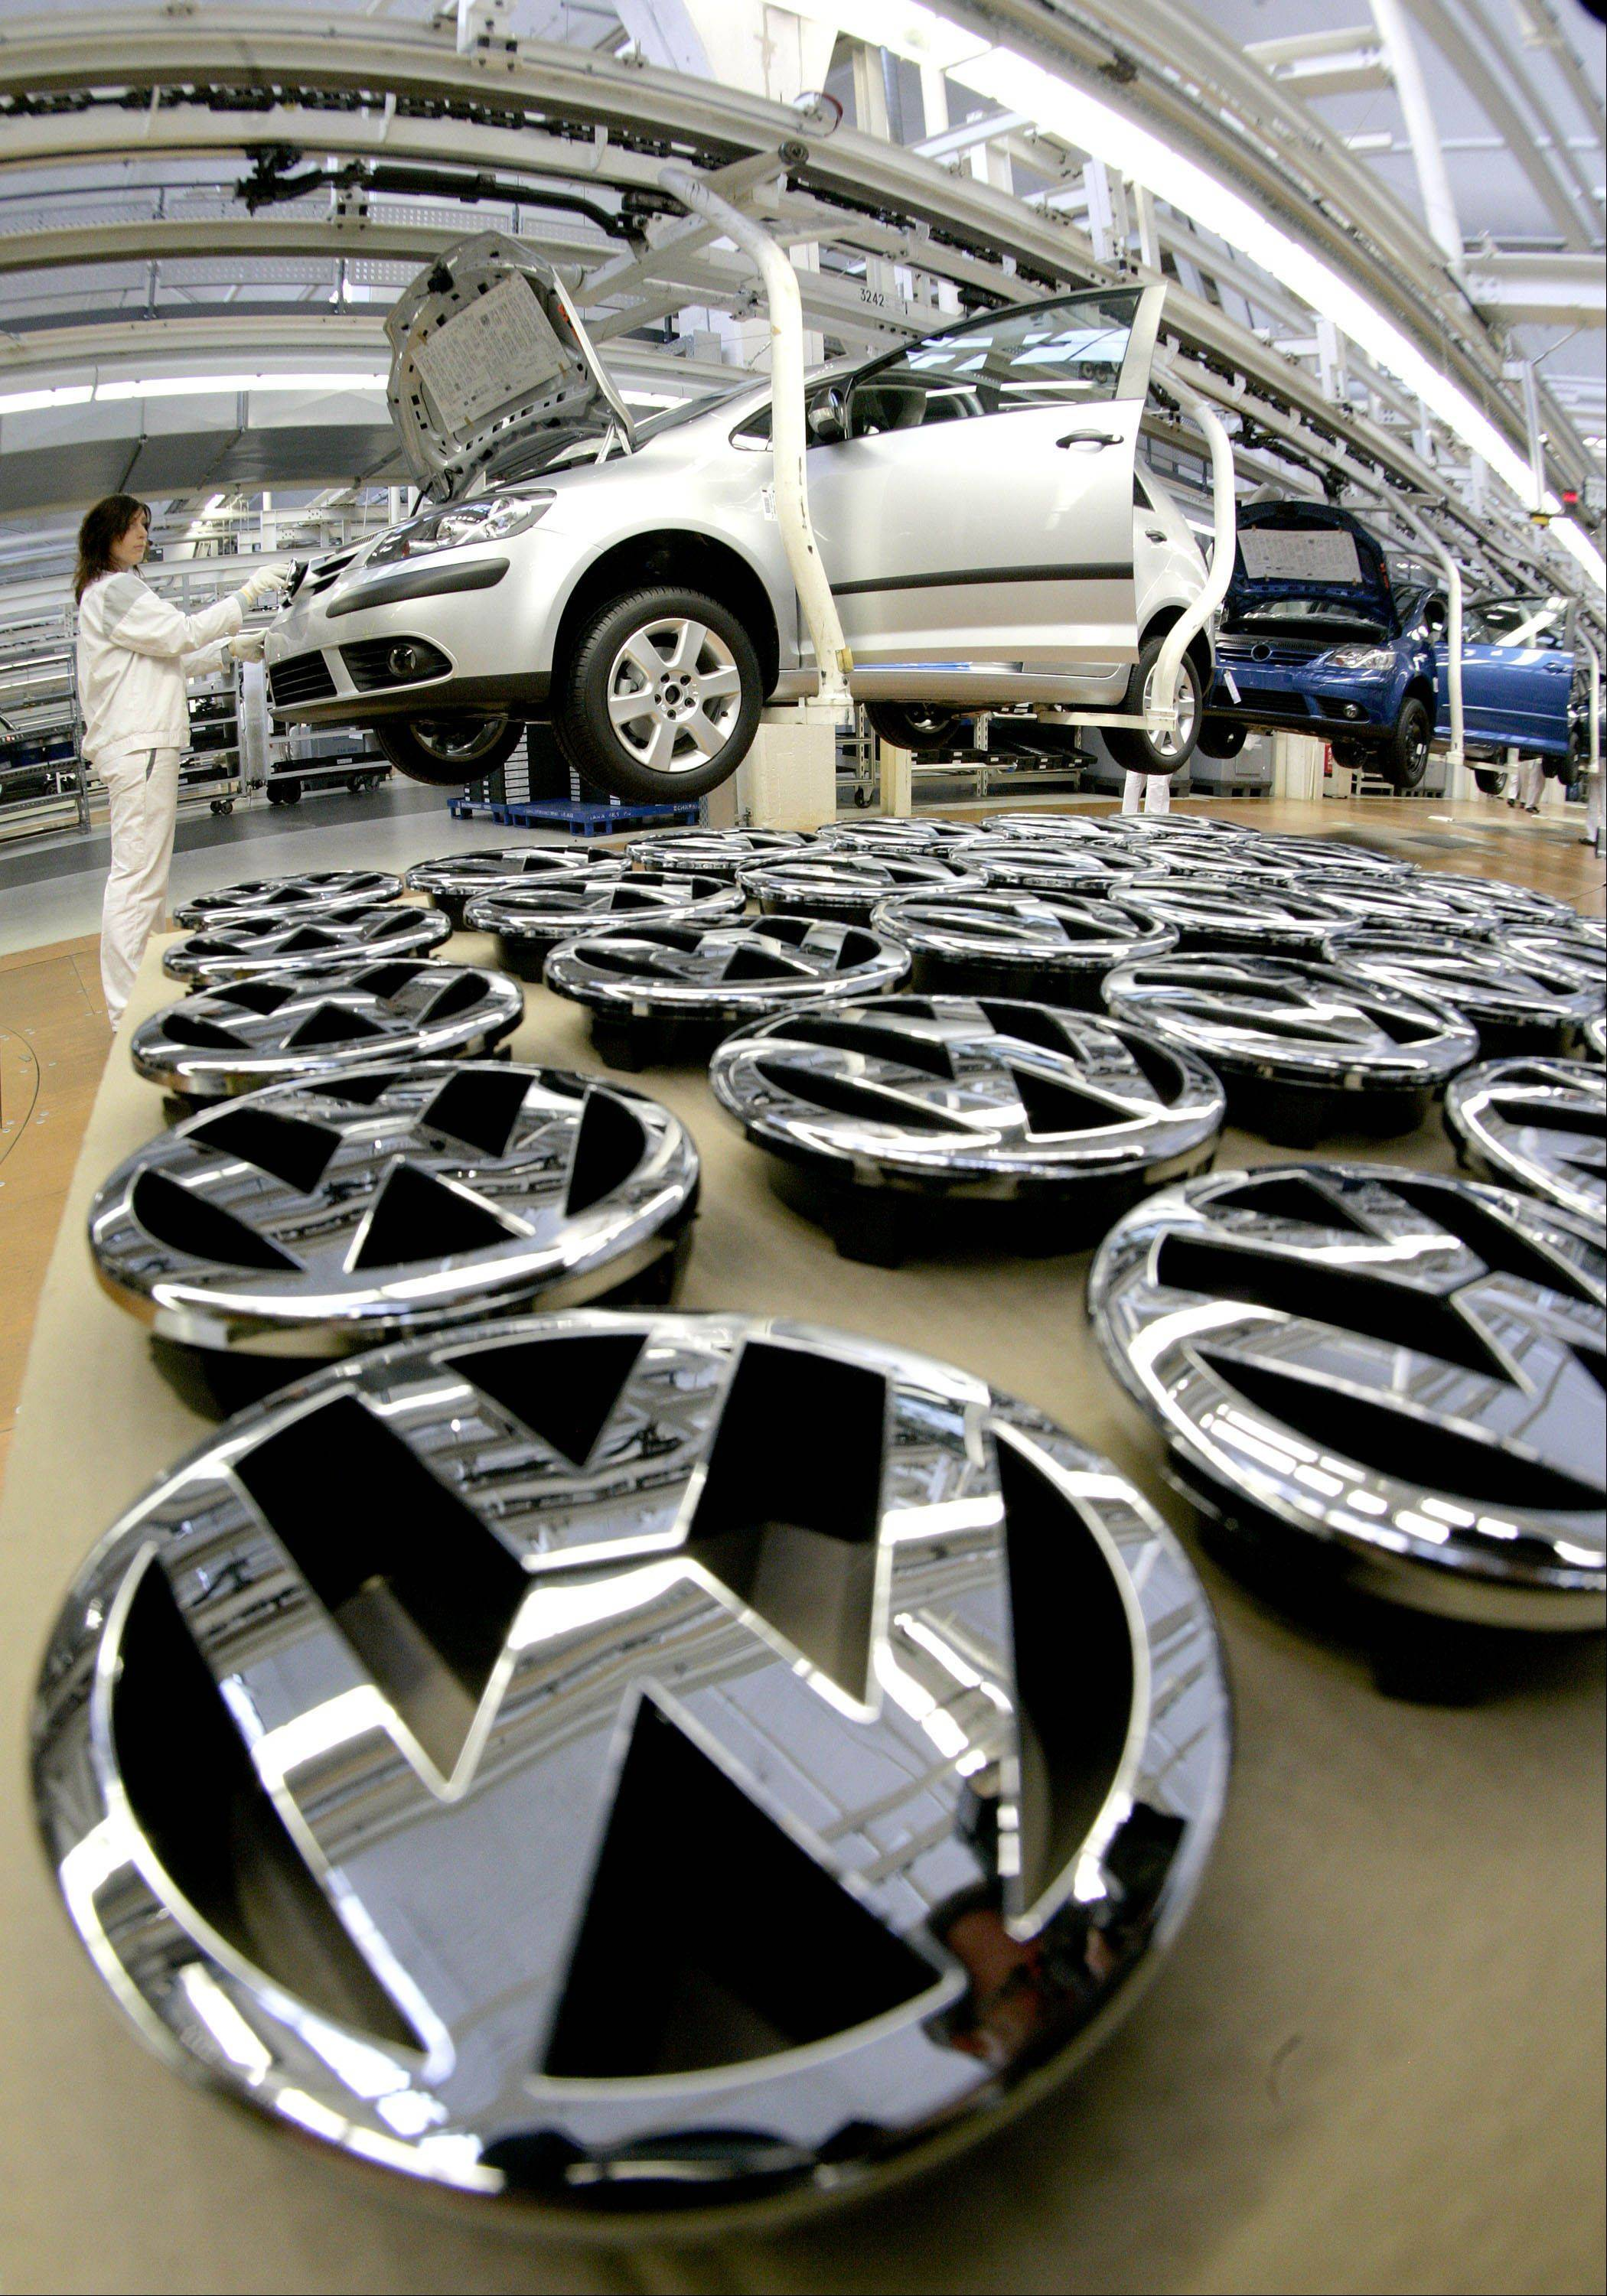 Volkswagen has become more cost conscious in recent months, saying that �further belt-tightening� was needed. The same month the company outlined plans to boost profitability for brands including the VW nameplate and the loss-making Seat unit.